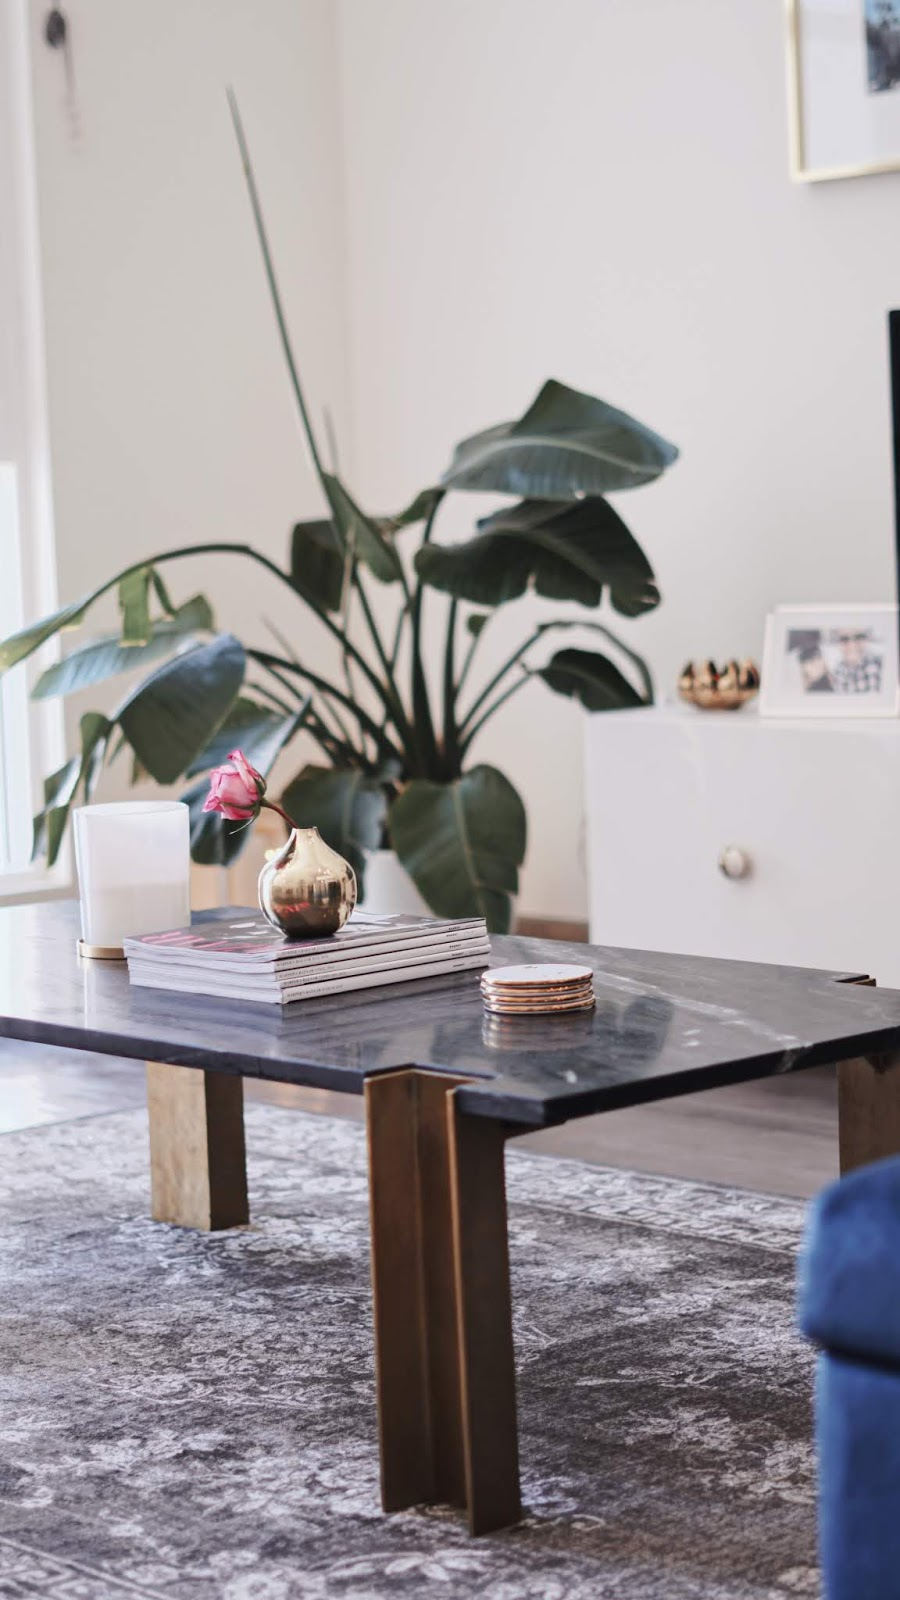 loft tour, los angeles apartment tour, cb2 Alcide marble coffee table, cb2 Paradigm dining table, living room, kitchen, modern cozy, affordable home decor,  pinterest home decor, homegoods, zara home, cb2, west elm, mycb2, blogger home,